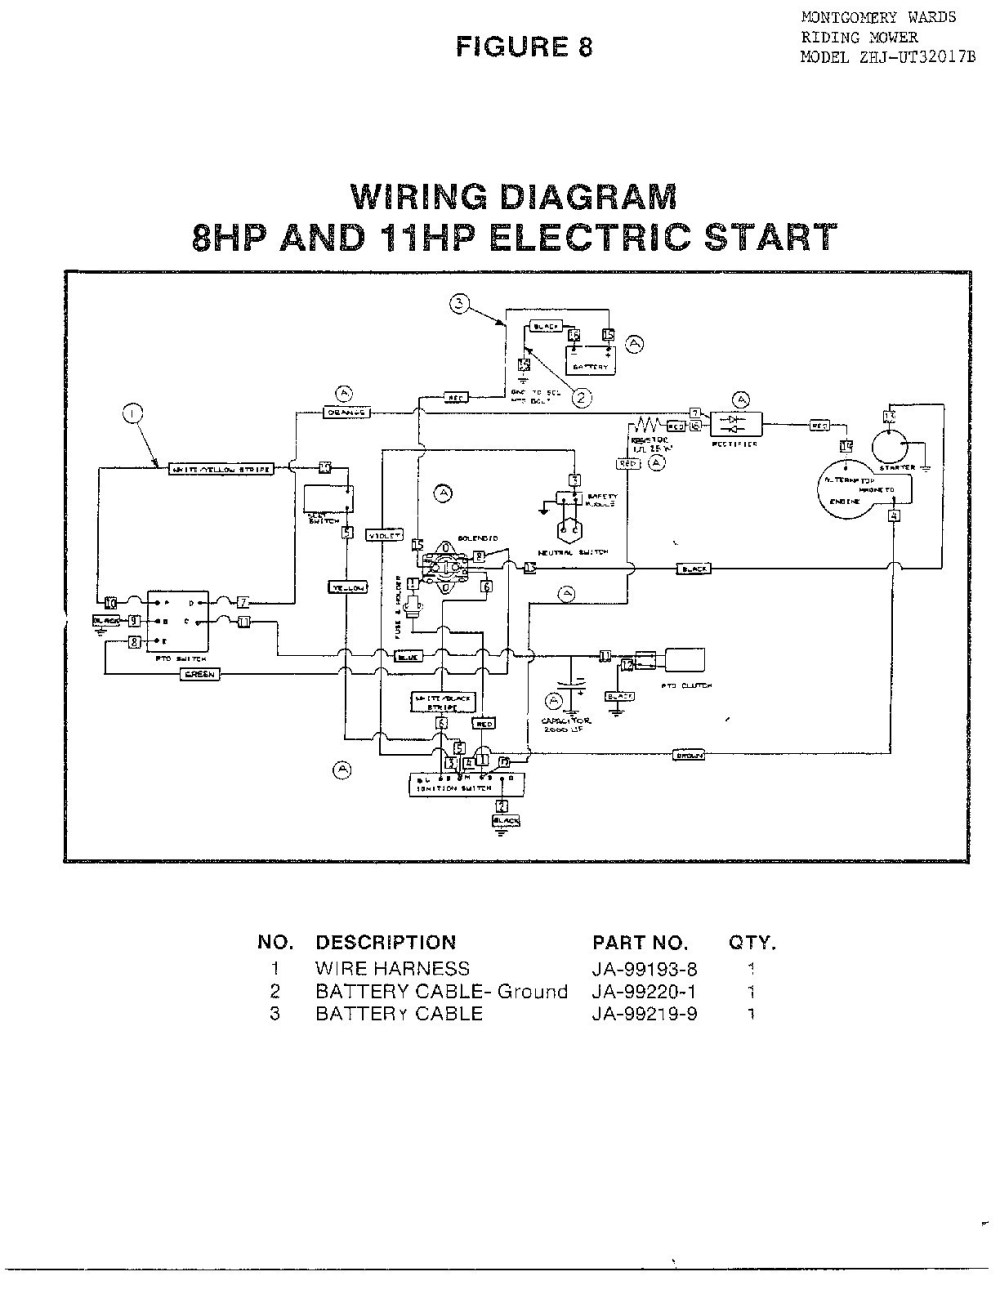 medium resolution of new briggs and stratton 16 5 hp wiring diagram mercury portals org